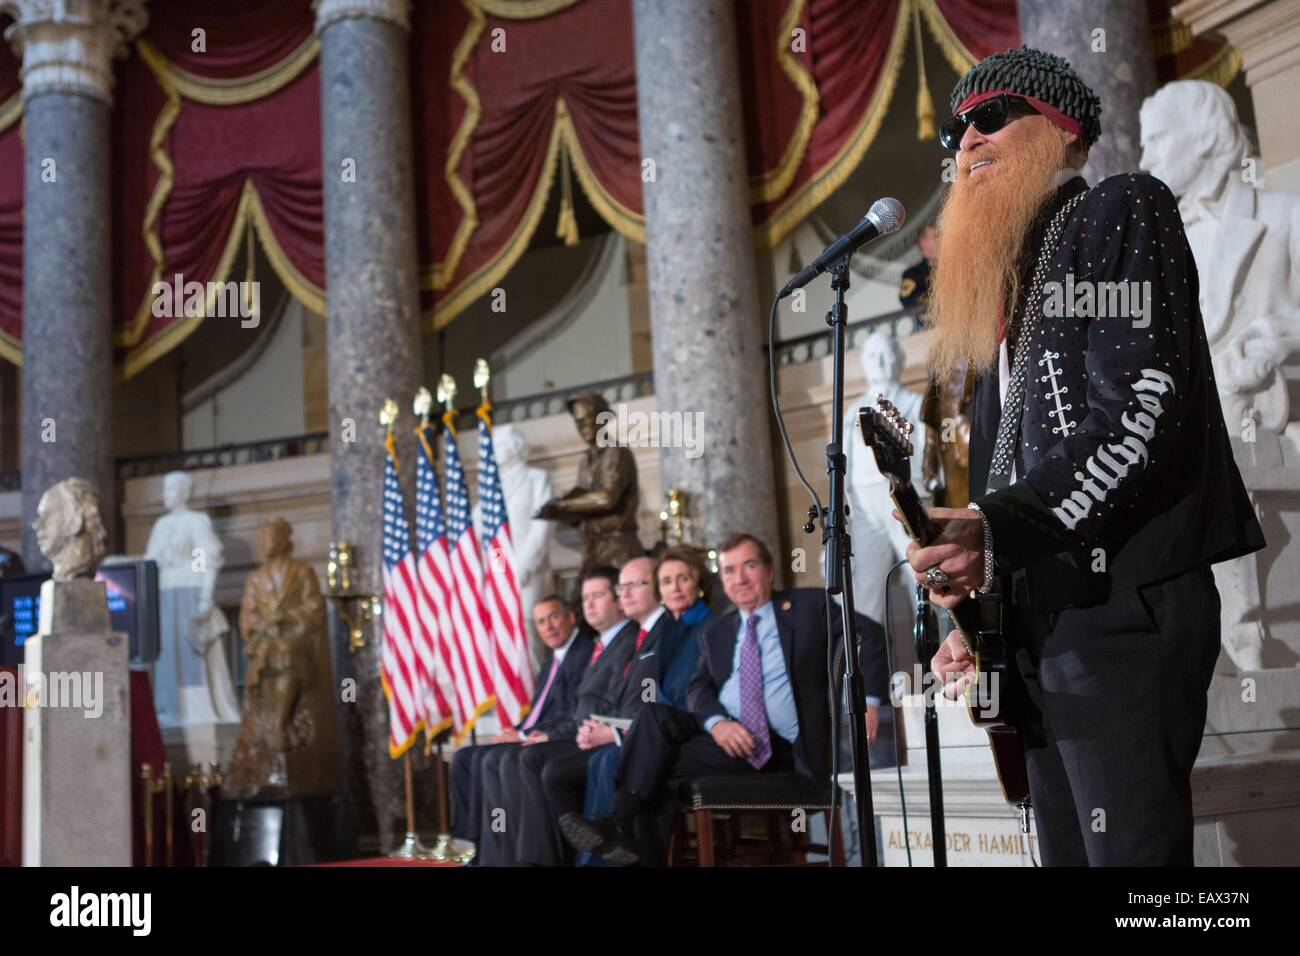 ZZ TOP bandleader and Rock and Roll Hall of Fame member Billy Gibbons performs a musical selection during a bust - Stock Image